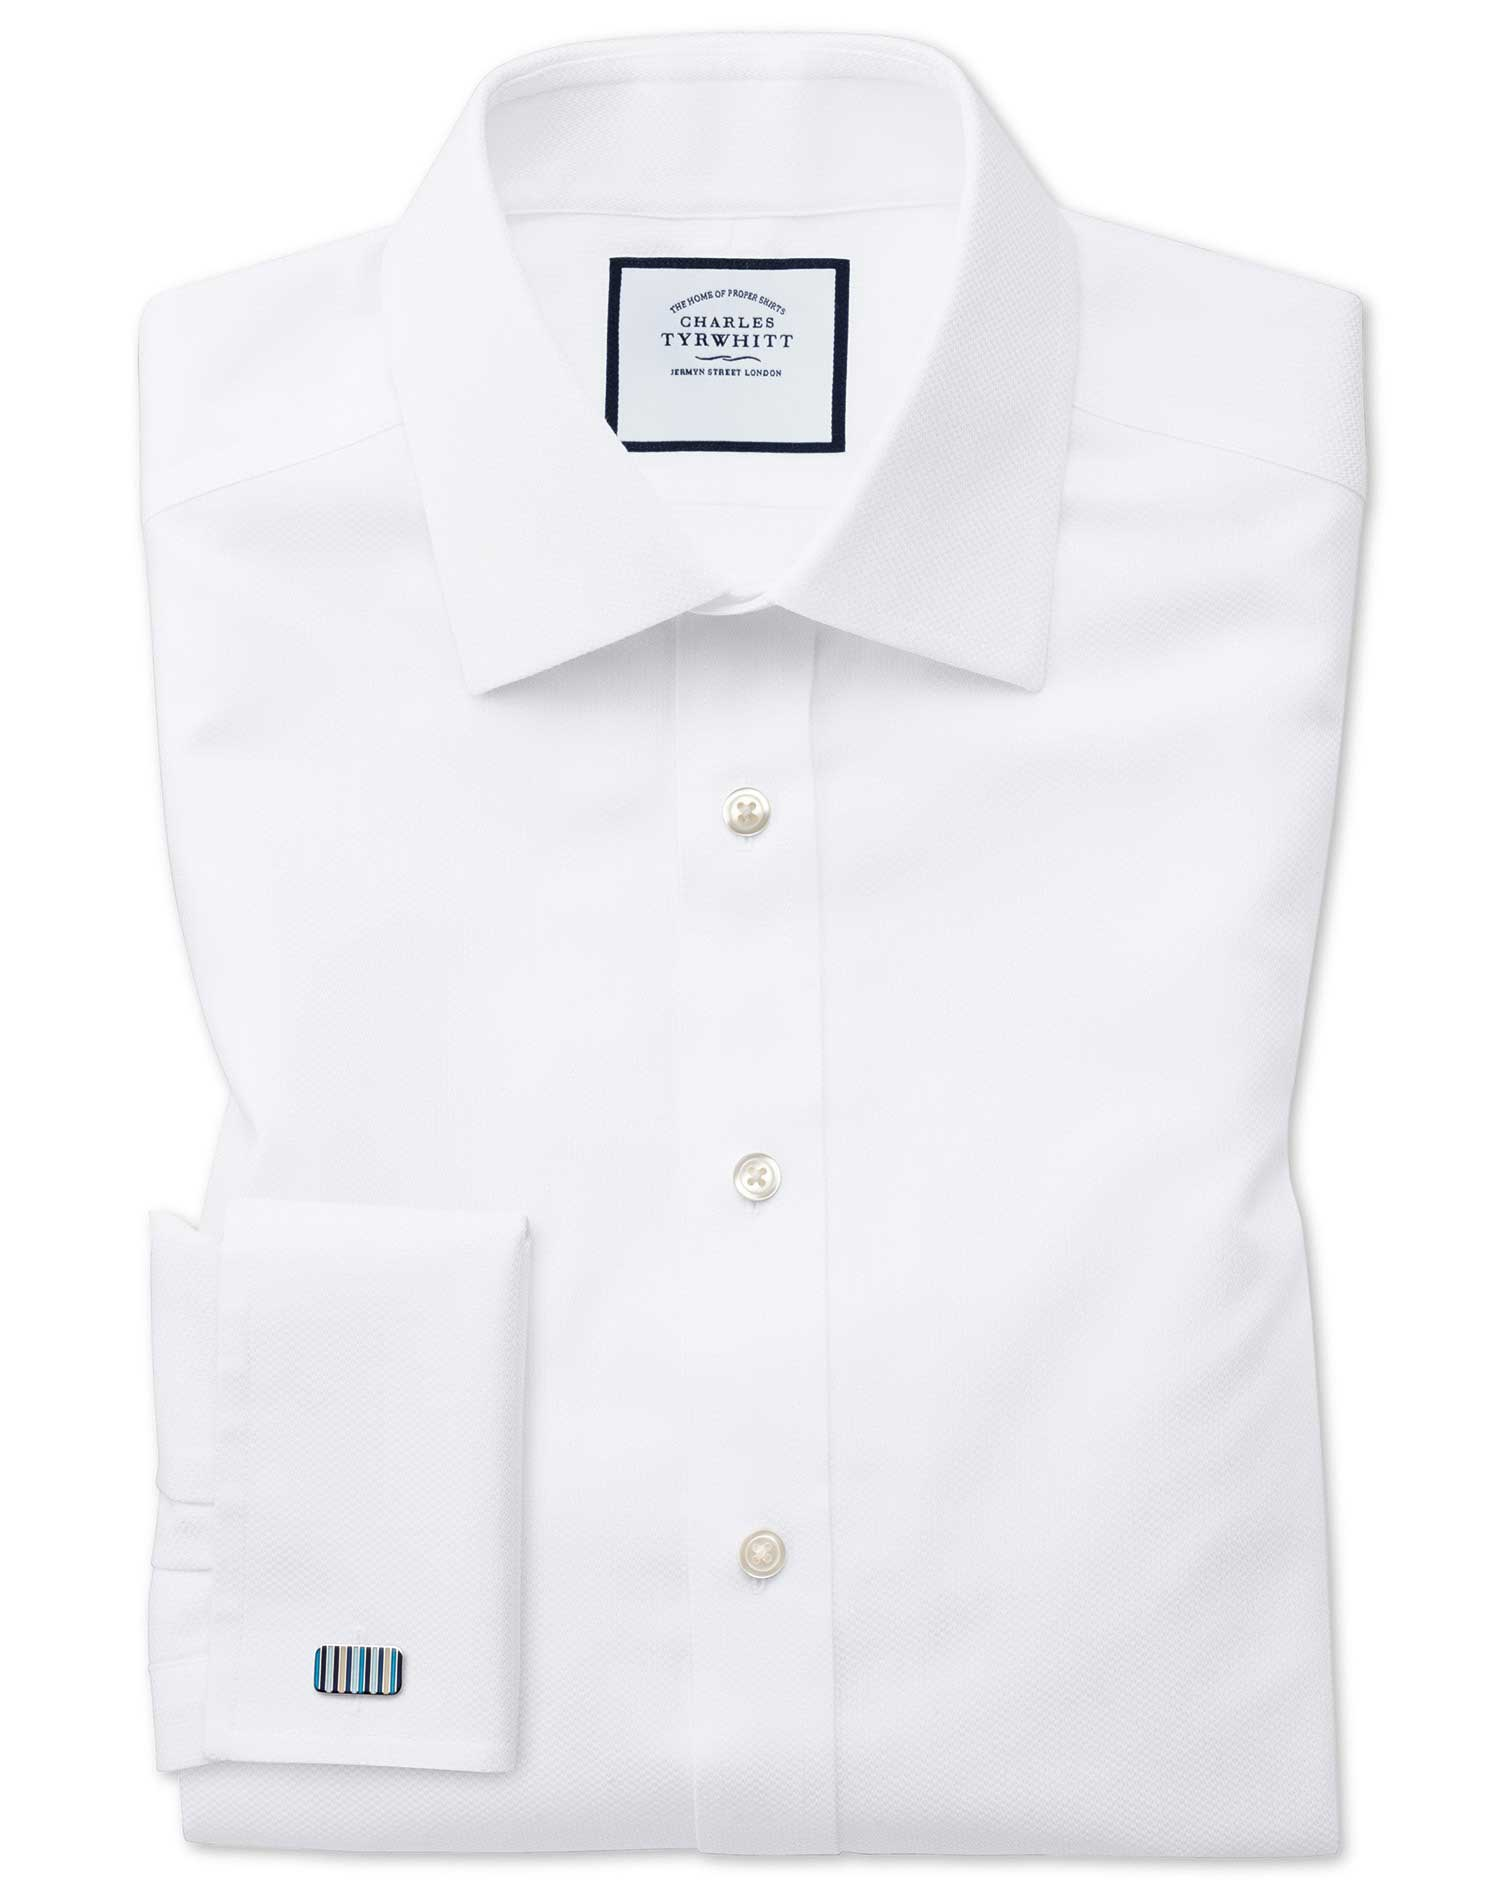 Extra Slim Fit Non-Iron White Arrow Weave Cotton Formal Shirt Double Cuff Size 15.5/32 by Charles Ty